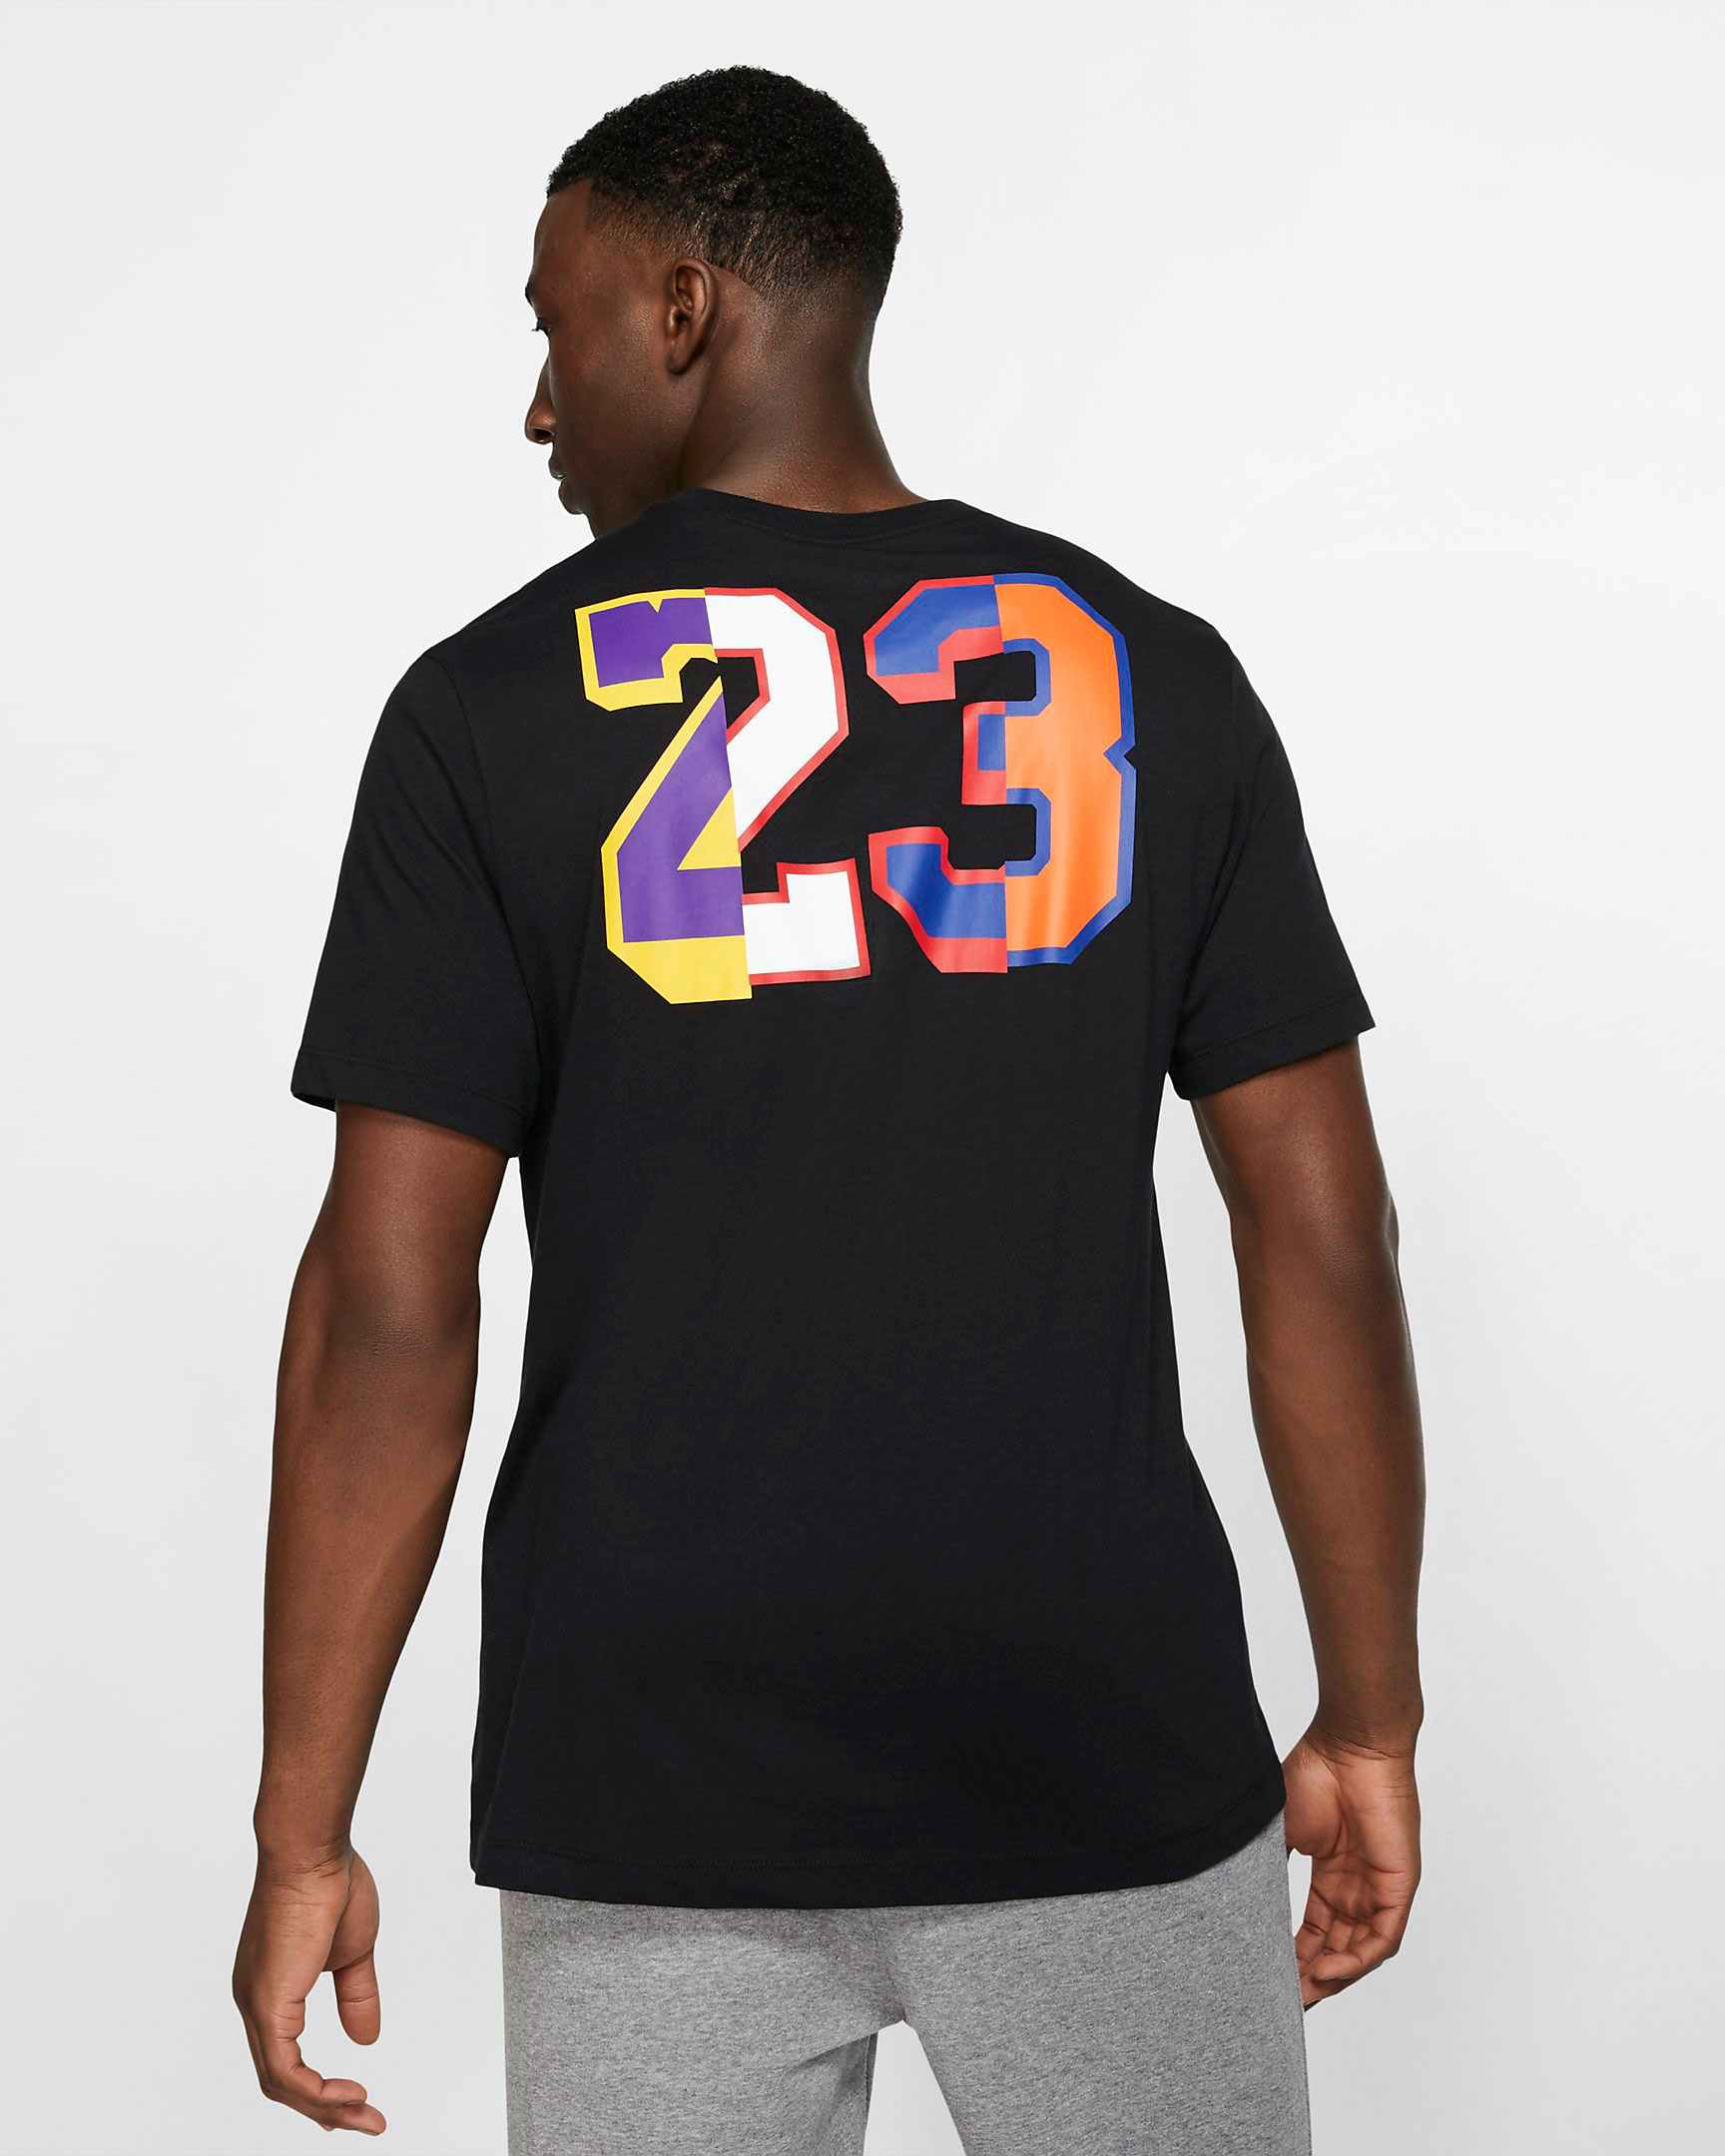 jordan-dna-shirt-black-2